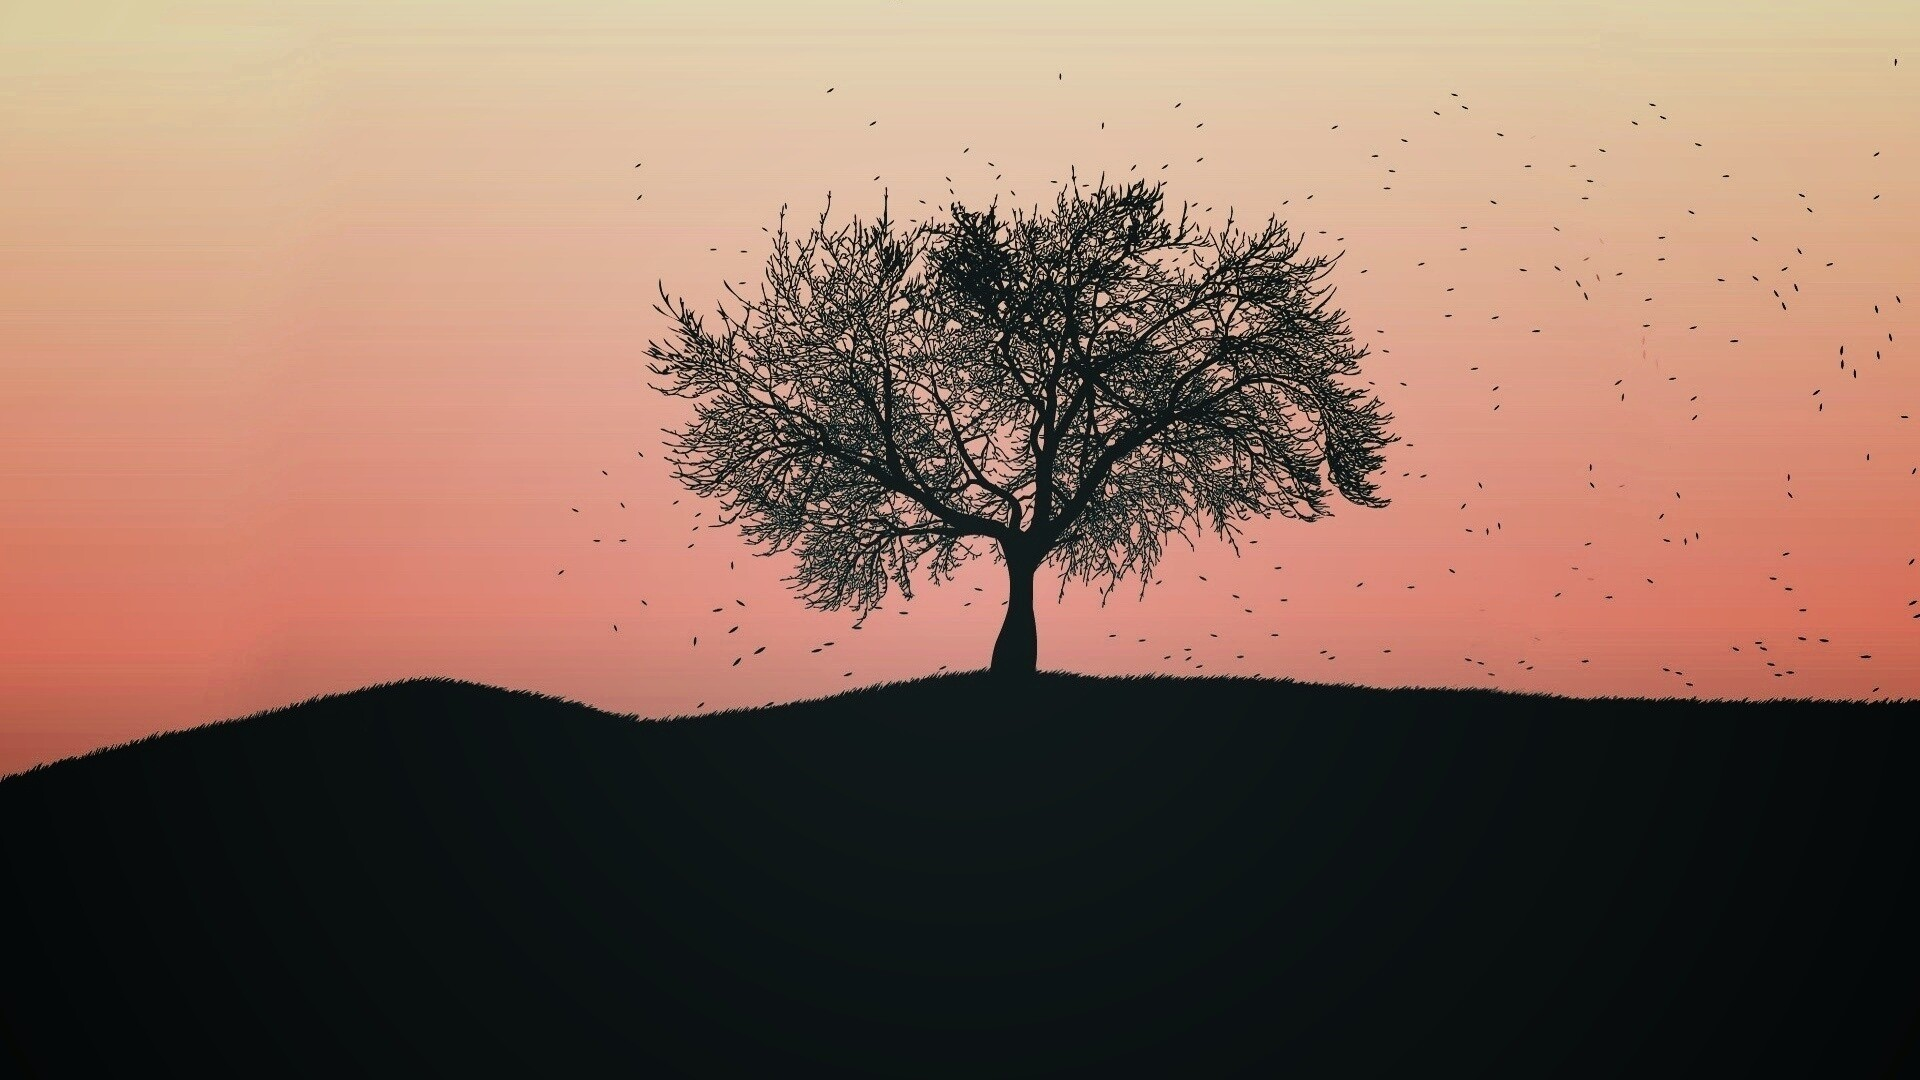 Tree Minimalist Free Wallpaper and Background